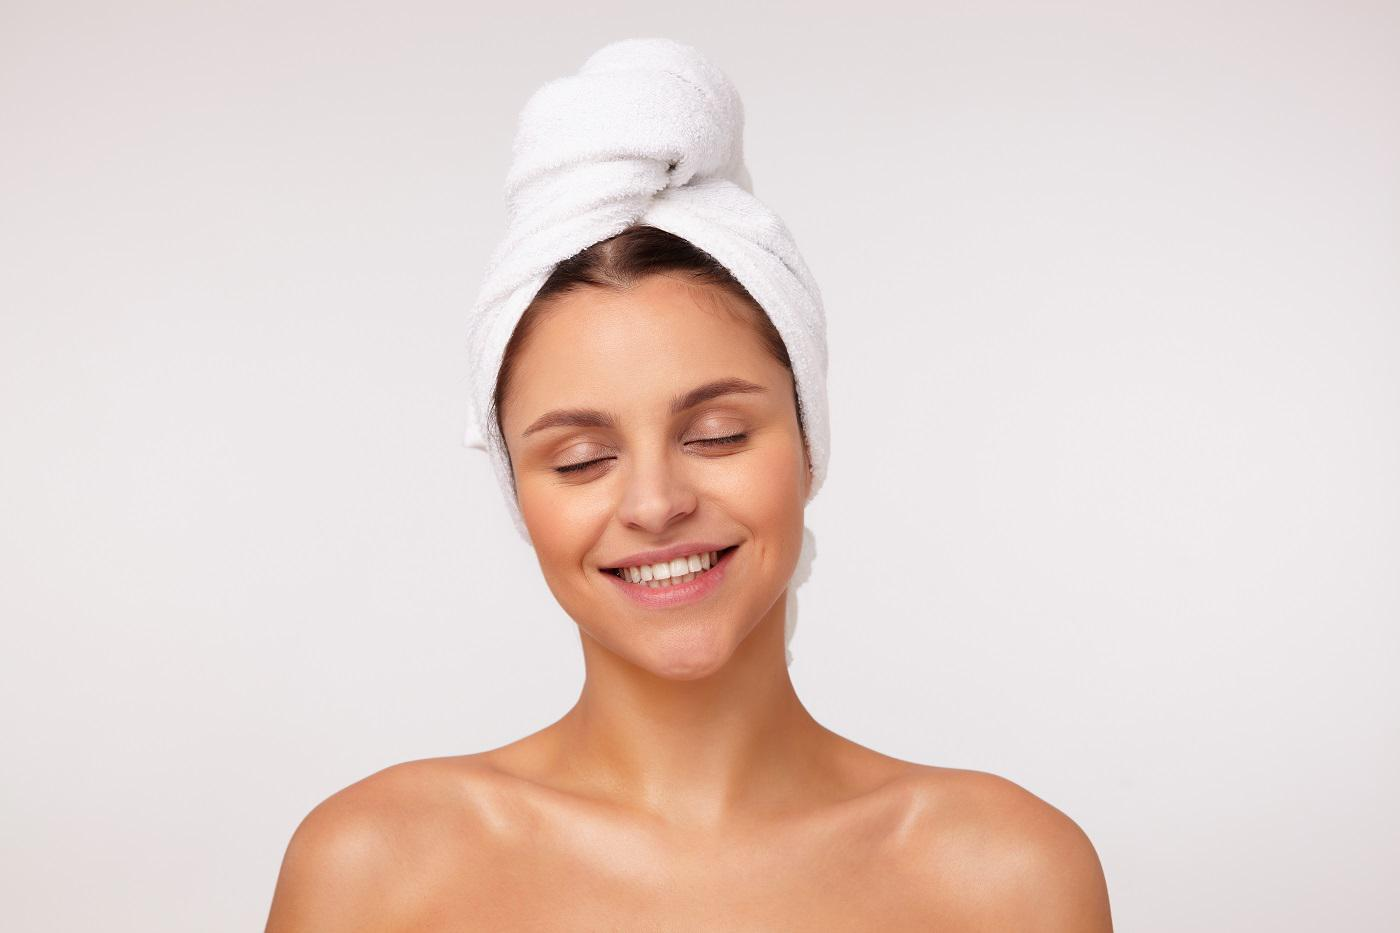 good-looking-young-cheerful-dark-haired-lovely-woman-smiling-happily-with-closed-eyes-being-nice-mood-after-having-shower-posing